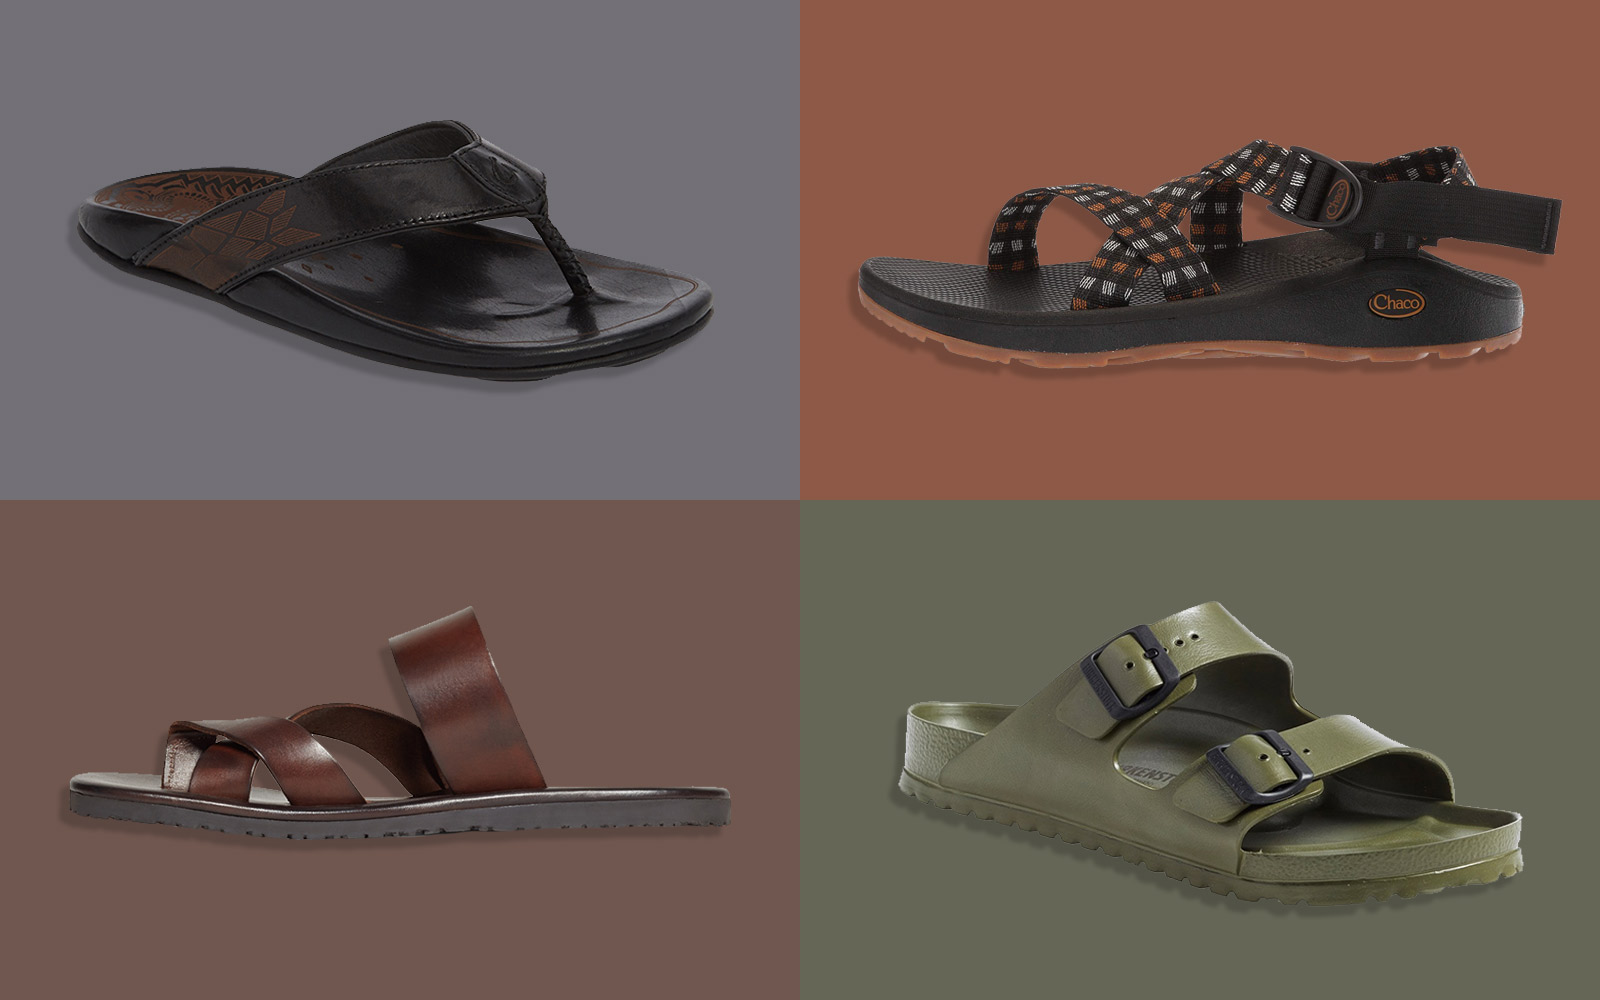 The Best Men's Sandals to Pack for Your Next Vacation